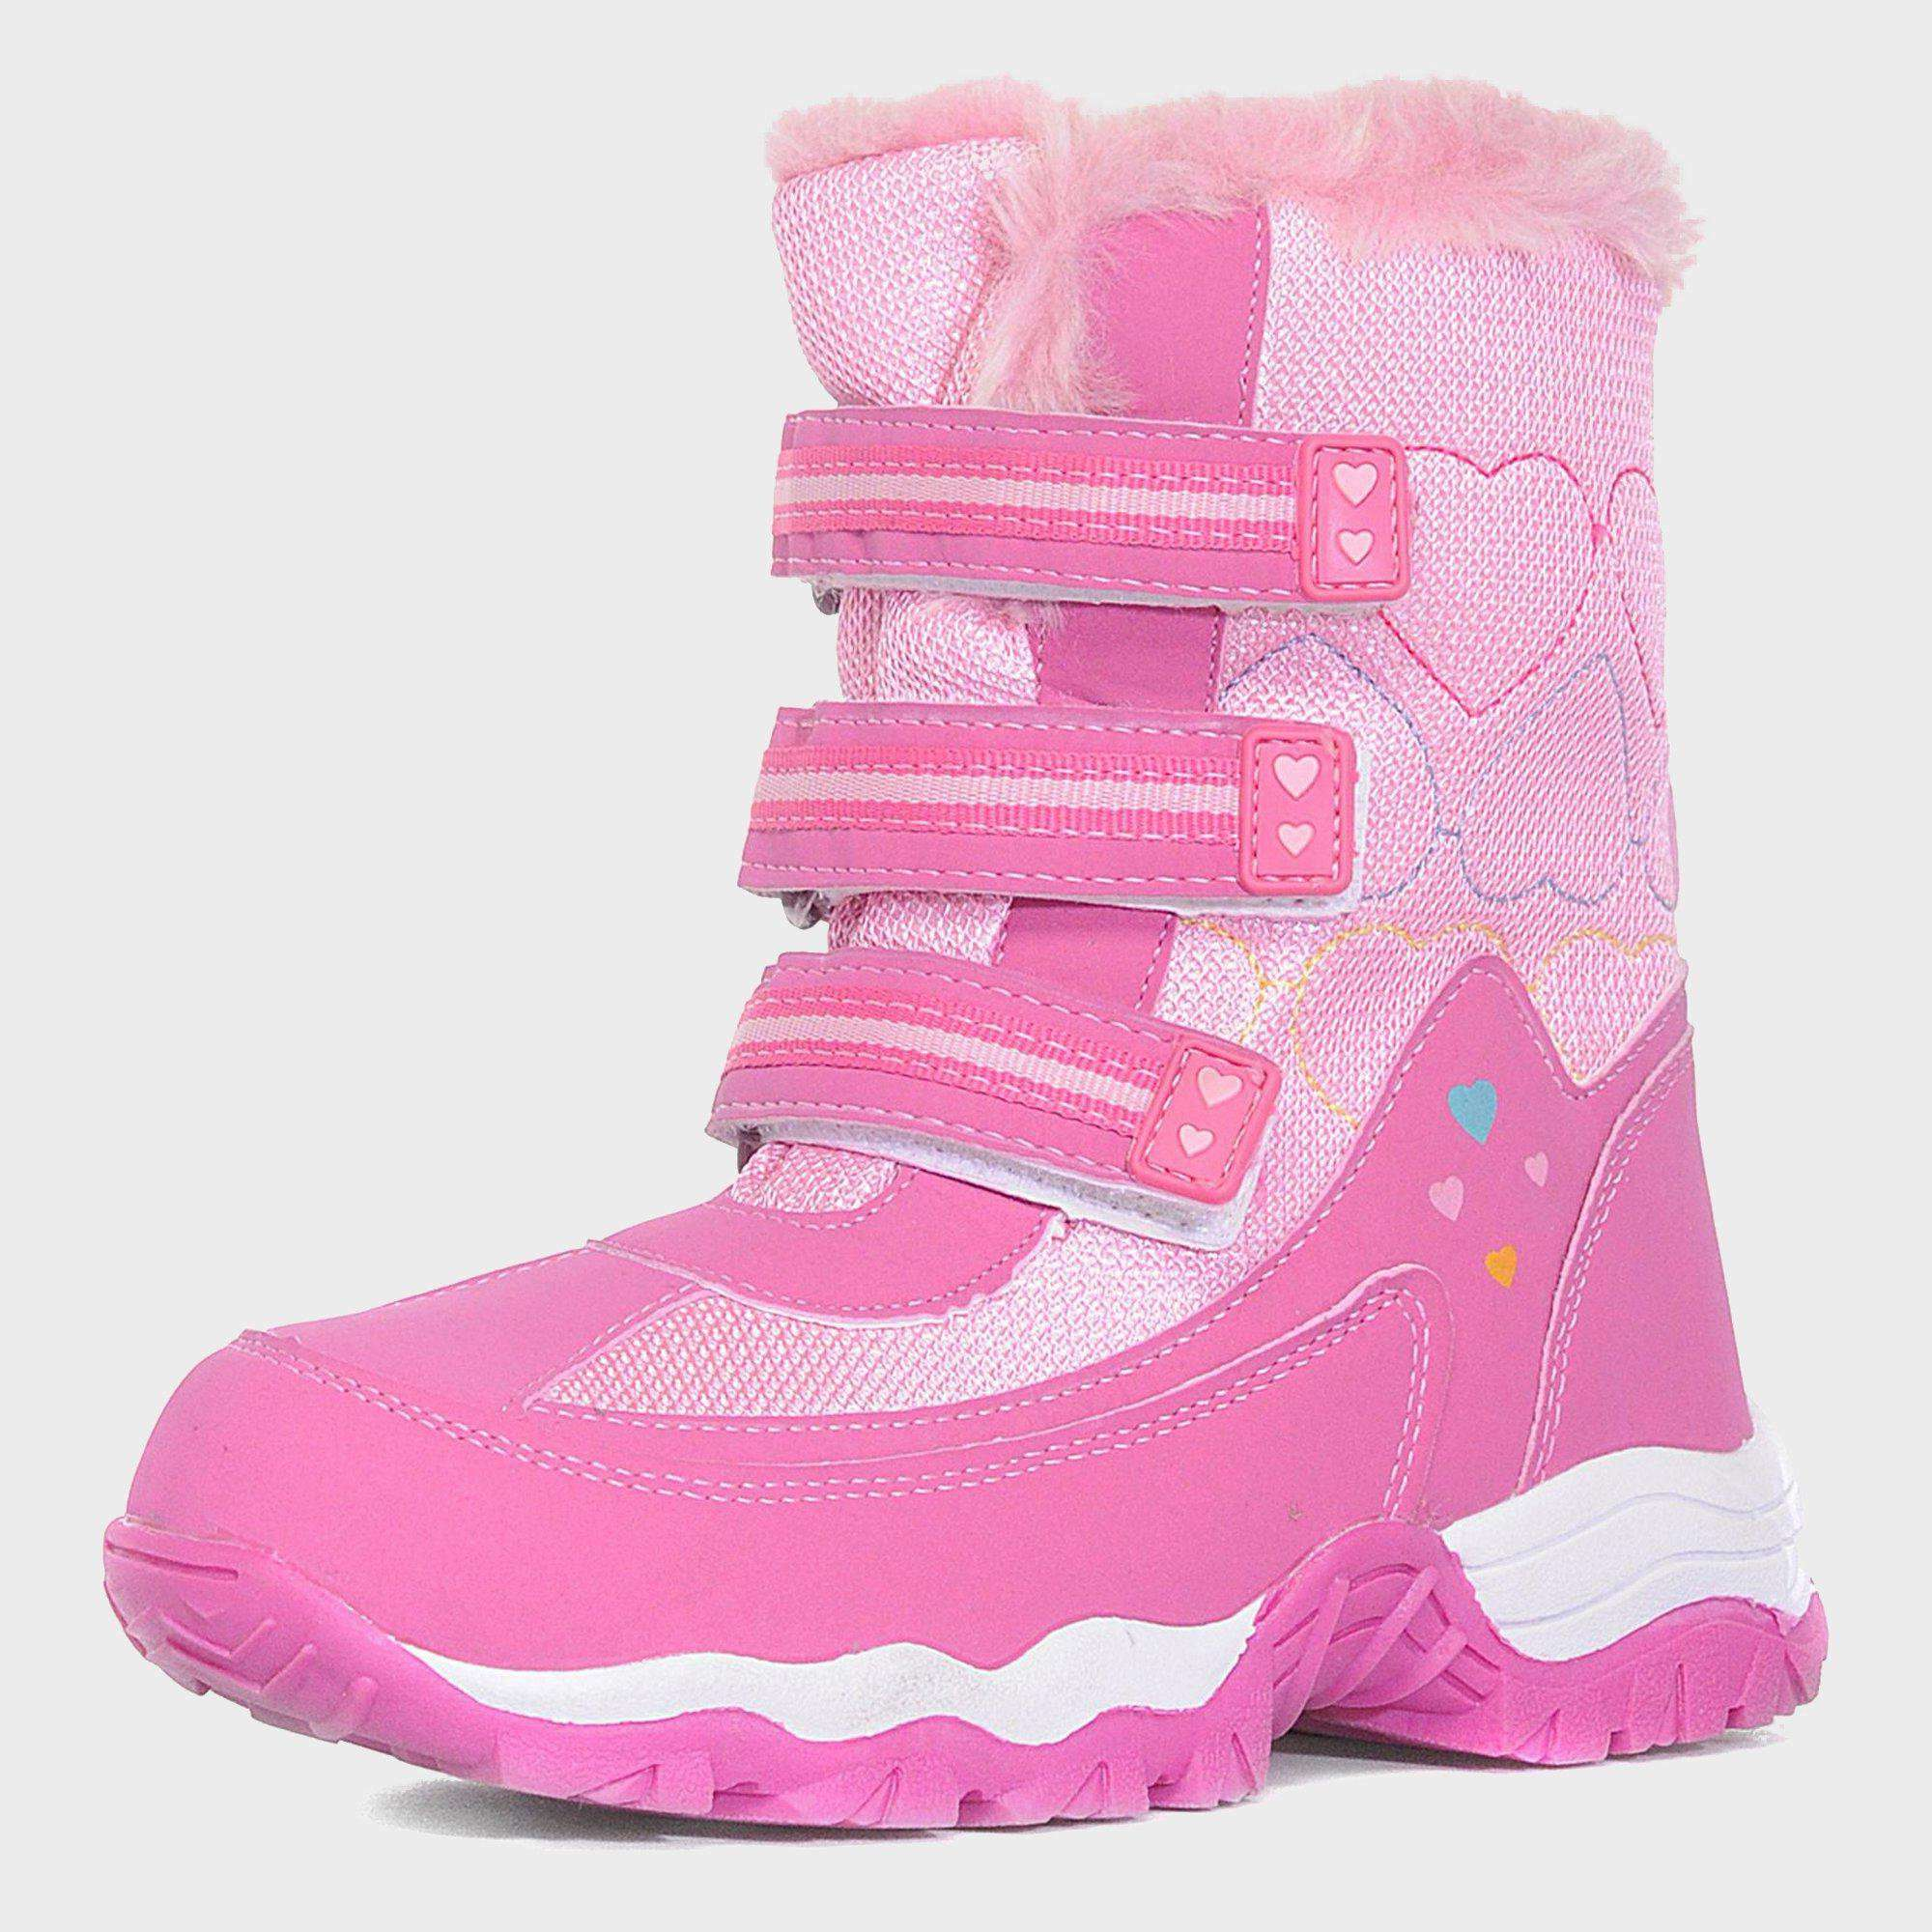 ALPINE Girl's Fur Snow Boots